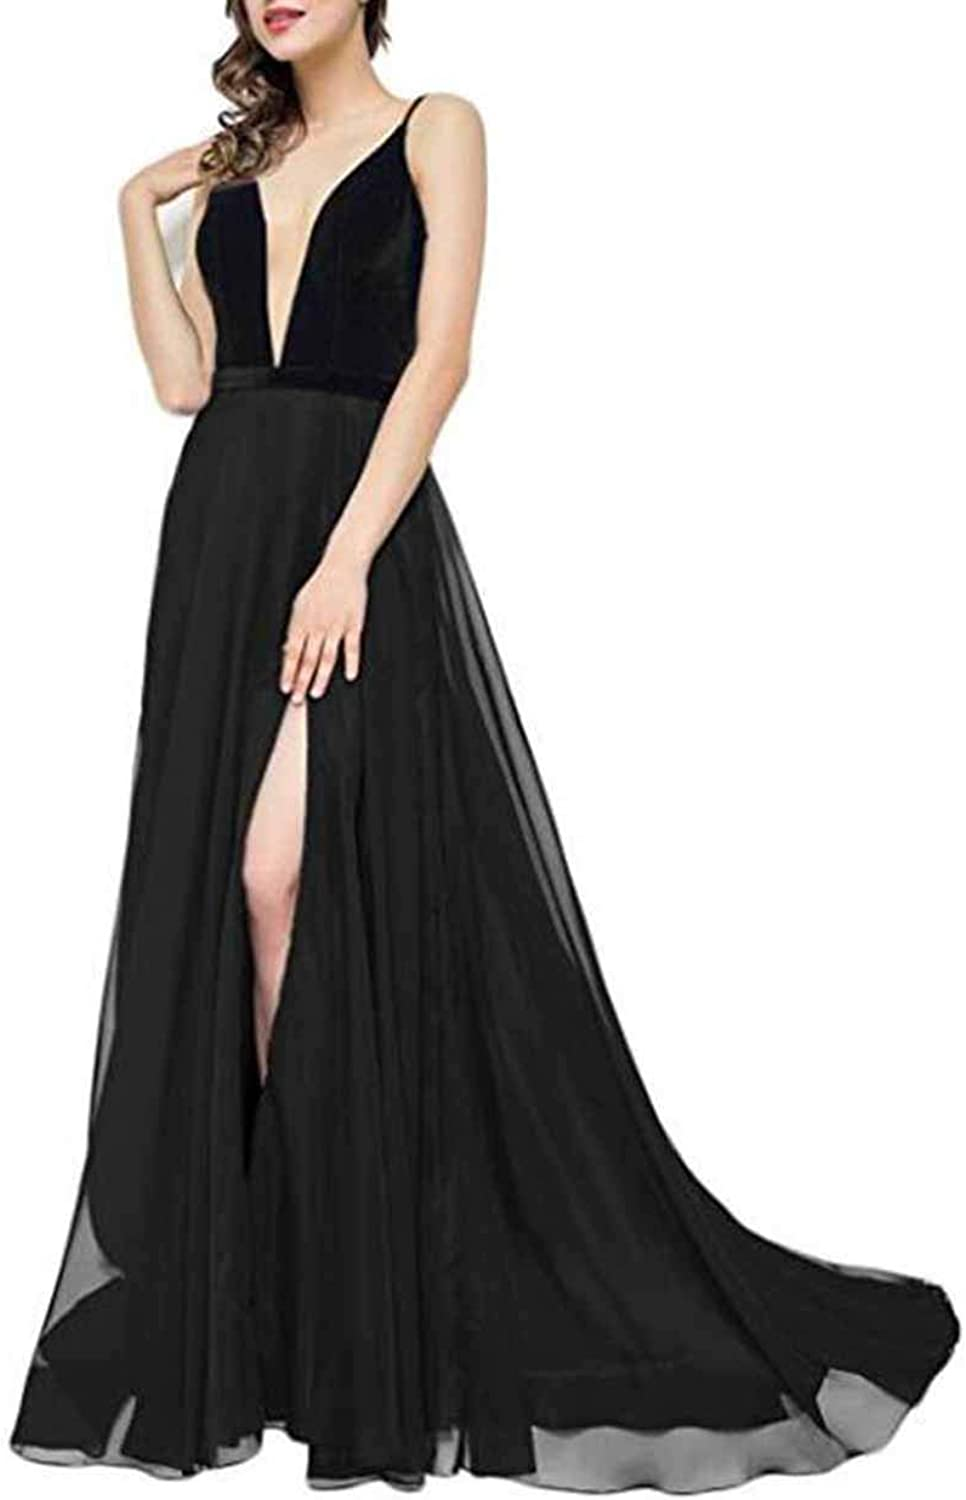 Alilith.Z High Side Split Prom Dresses Sexy Deep V Neck Velvet Formal Evening Dresses Party Gowns for Women